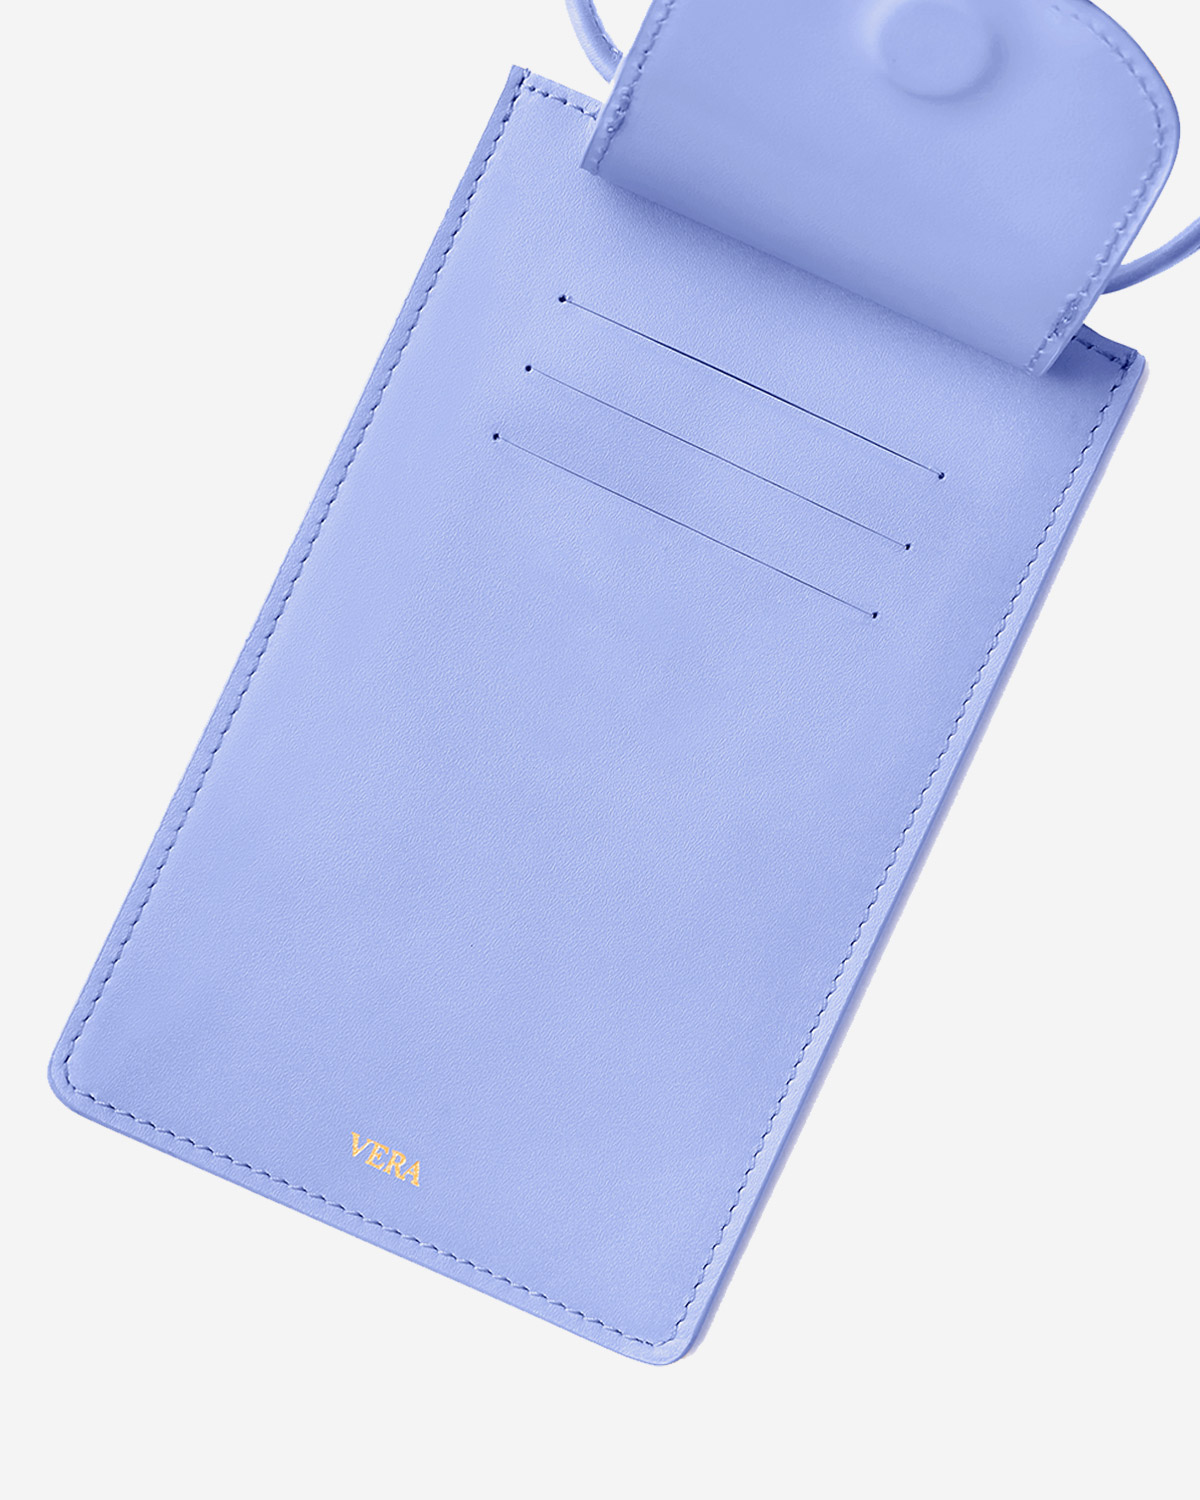 VERA Best Millie Pouch in Blue Bell